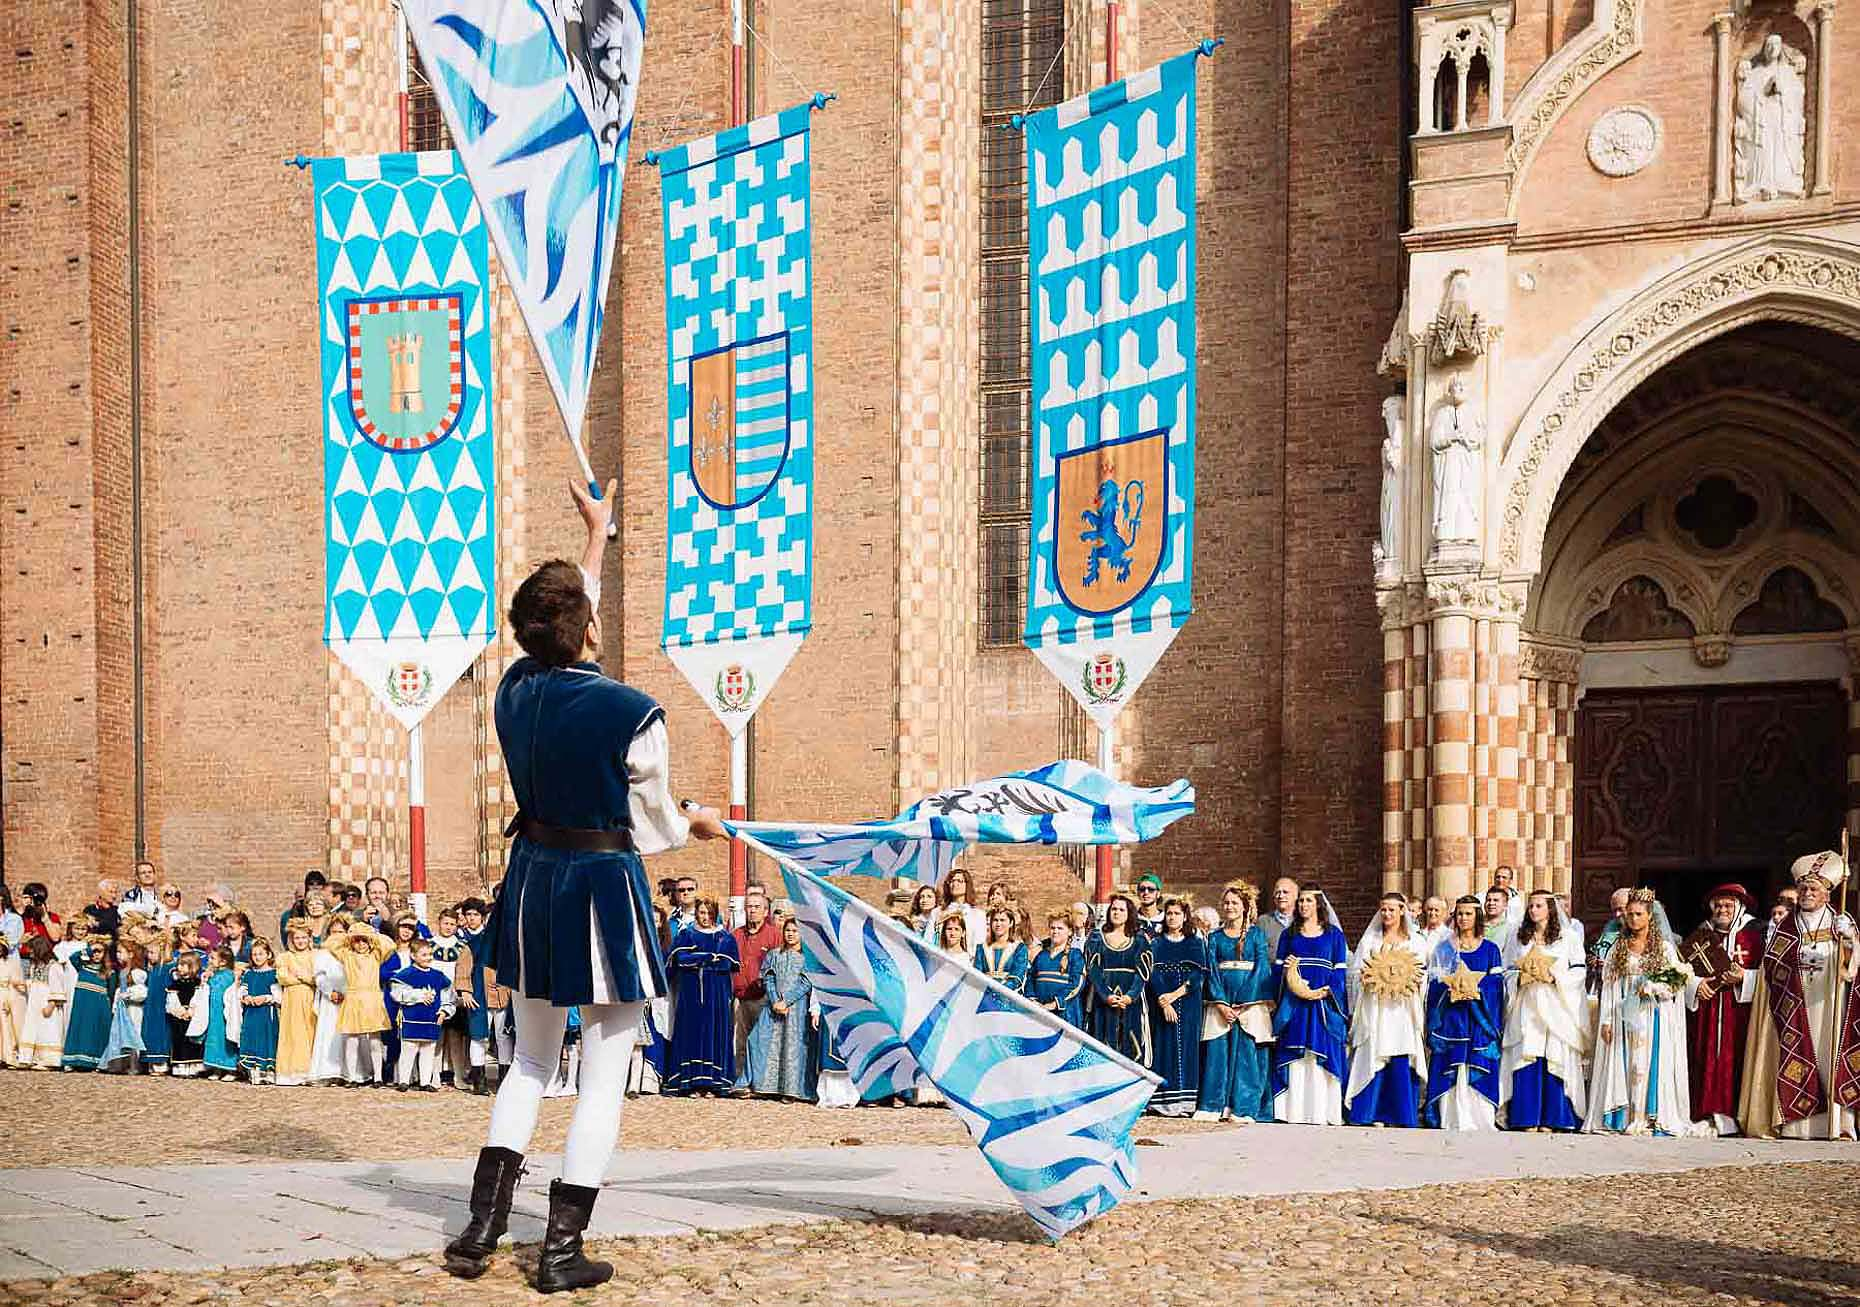 cathedral-juggling-medieval-palio-asti-italy-13